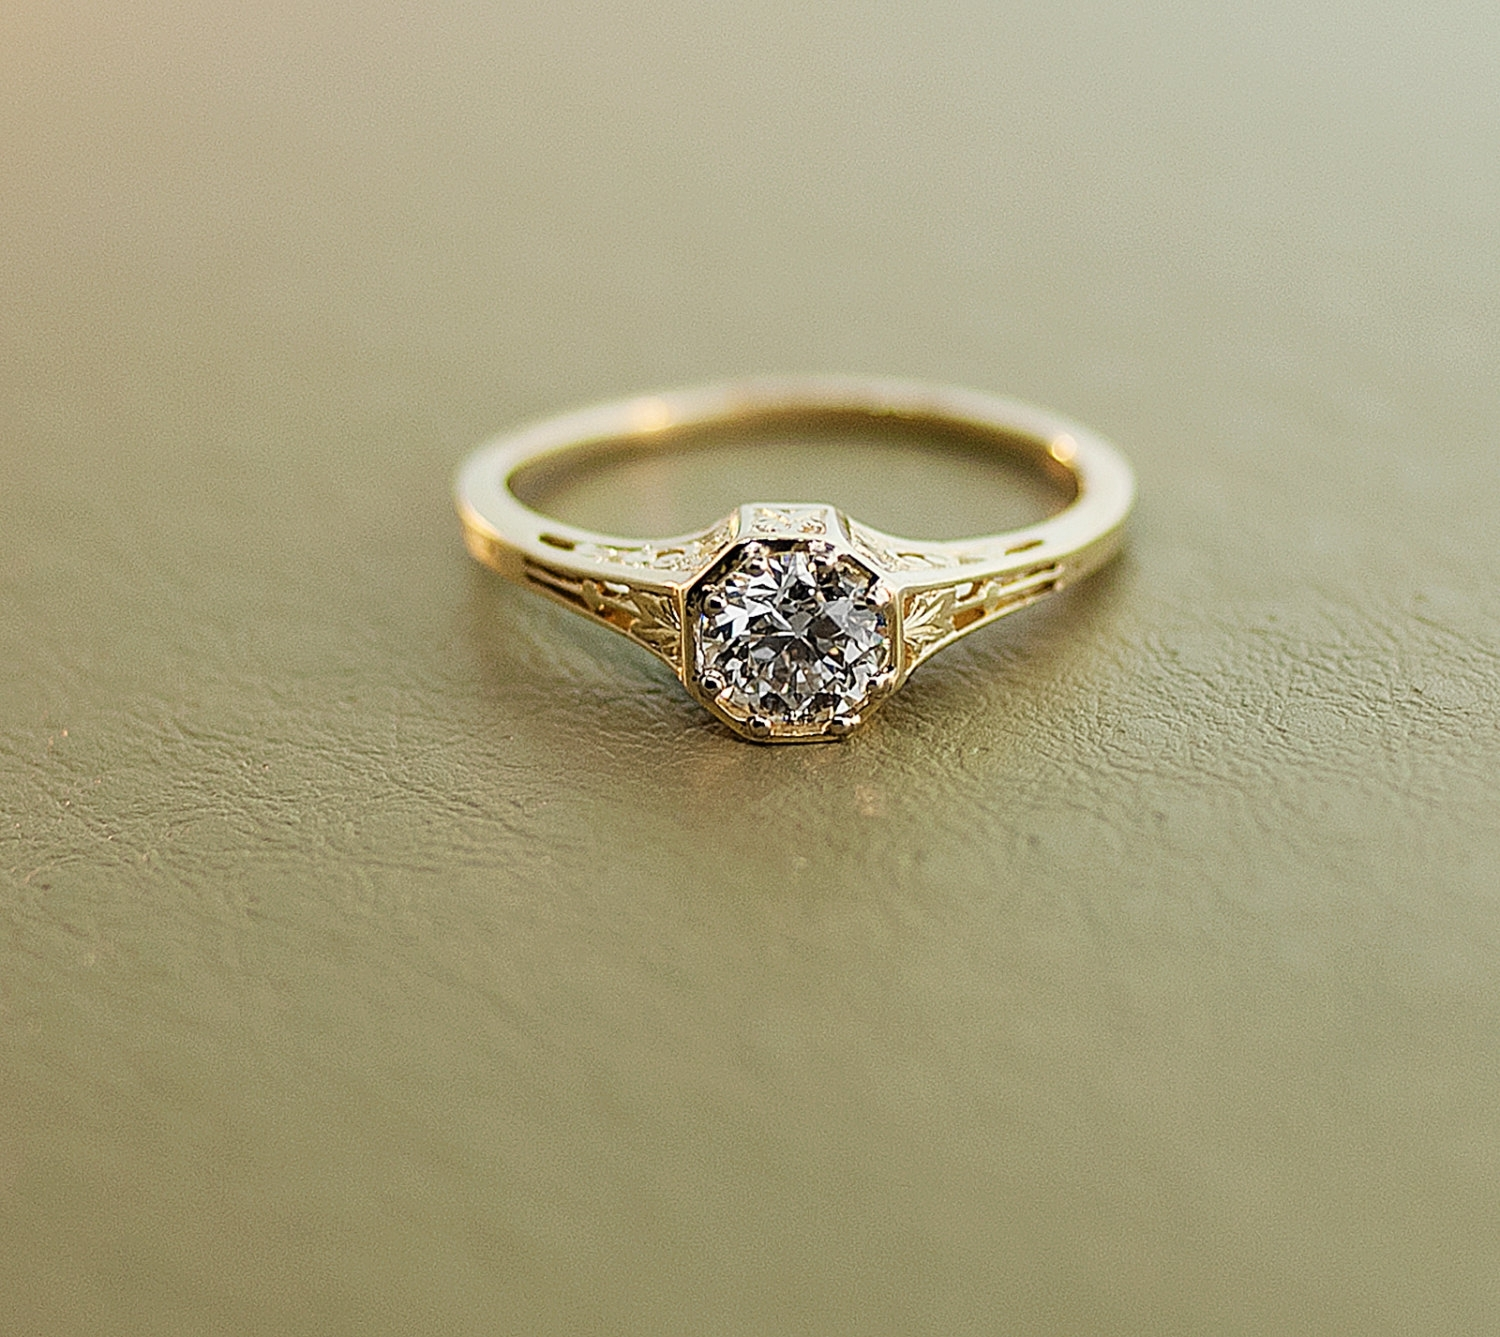 Antique Engagement Rings Gold | Wedding, Promise, Diamond In Most Recent Vintage Style Non Diamond Engagement Rings (View 5 of 15)